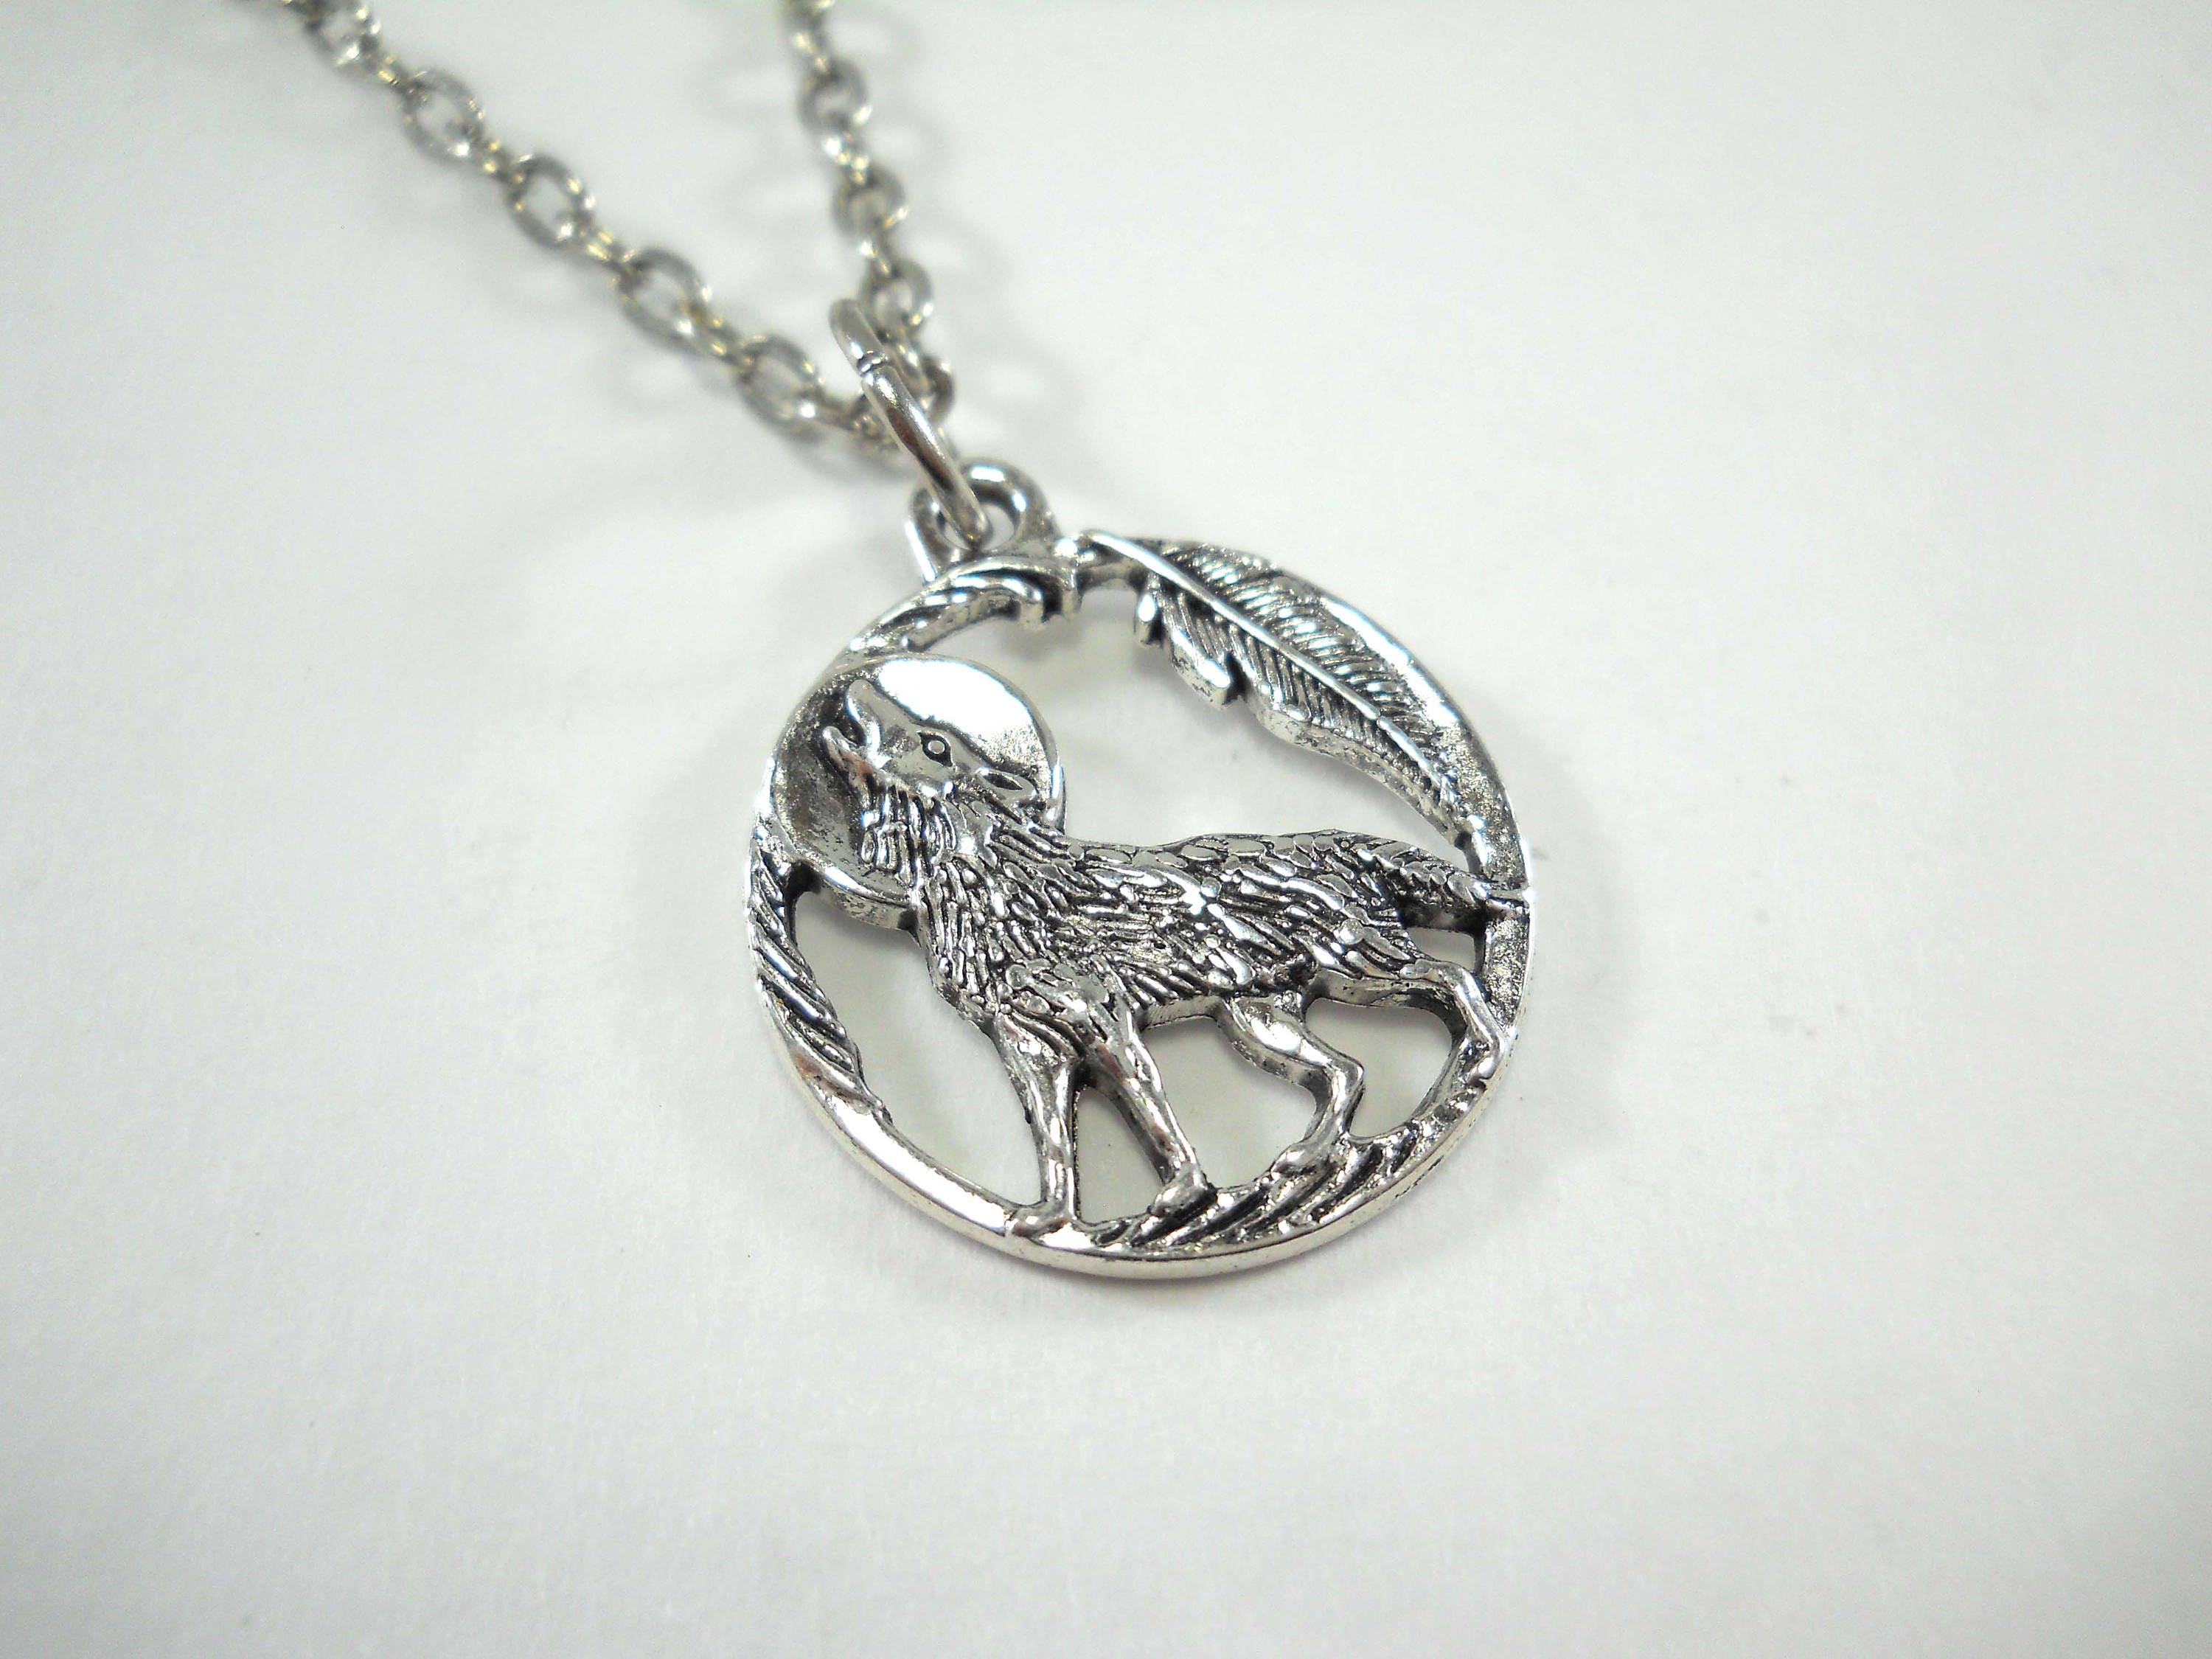 han products cholo pendant jewelry wolf series necklace lobo i head shadow